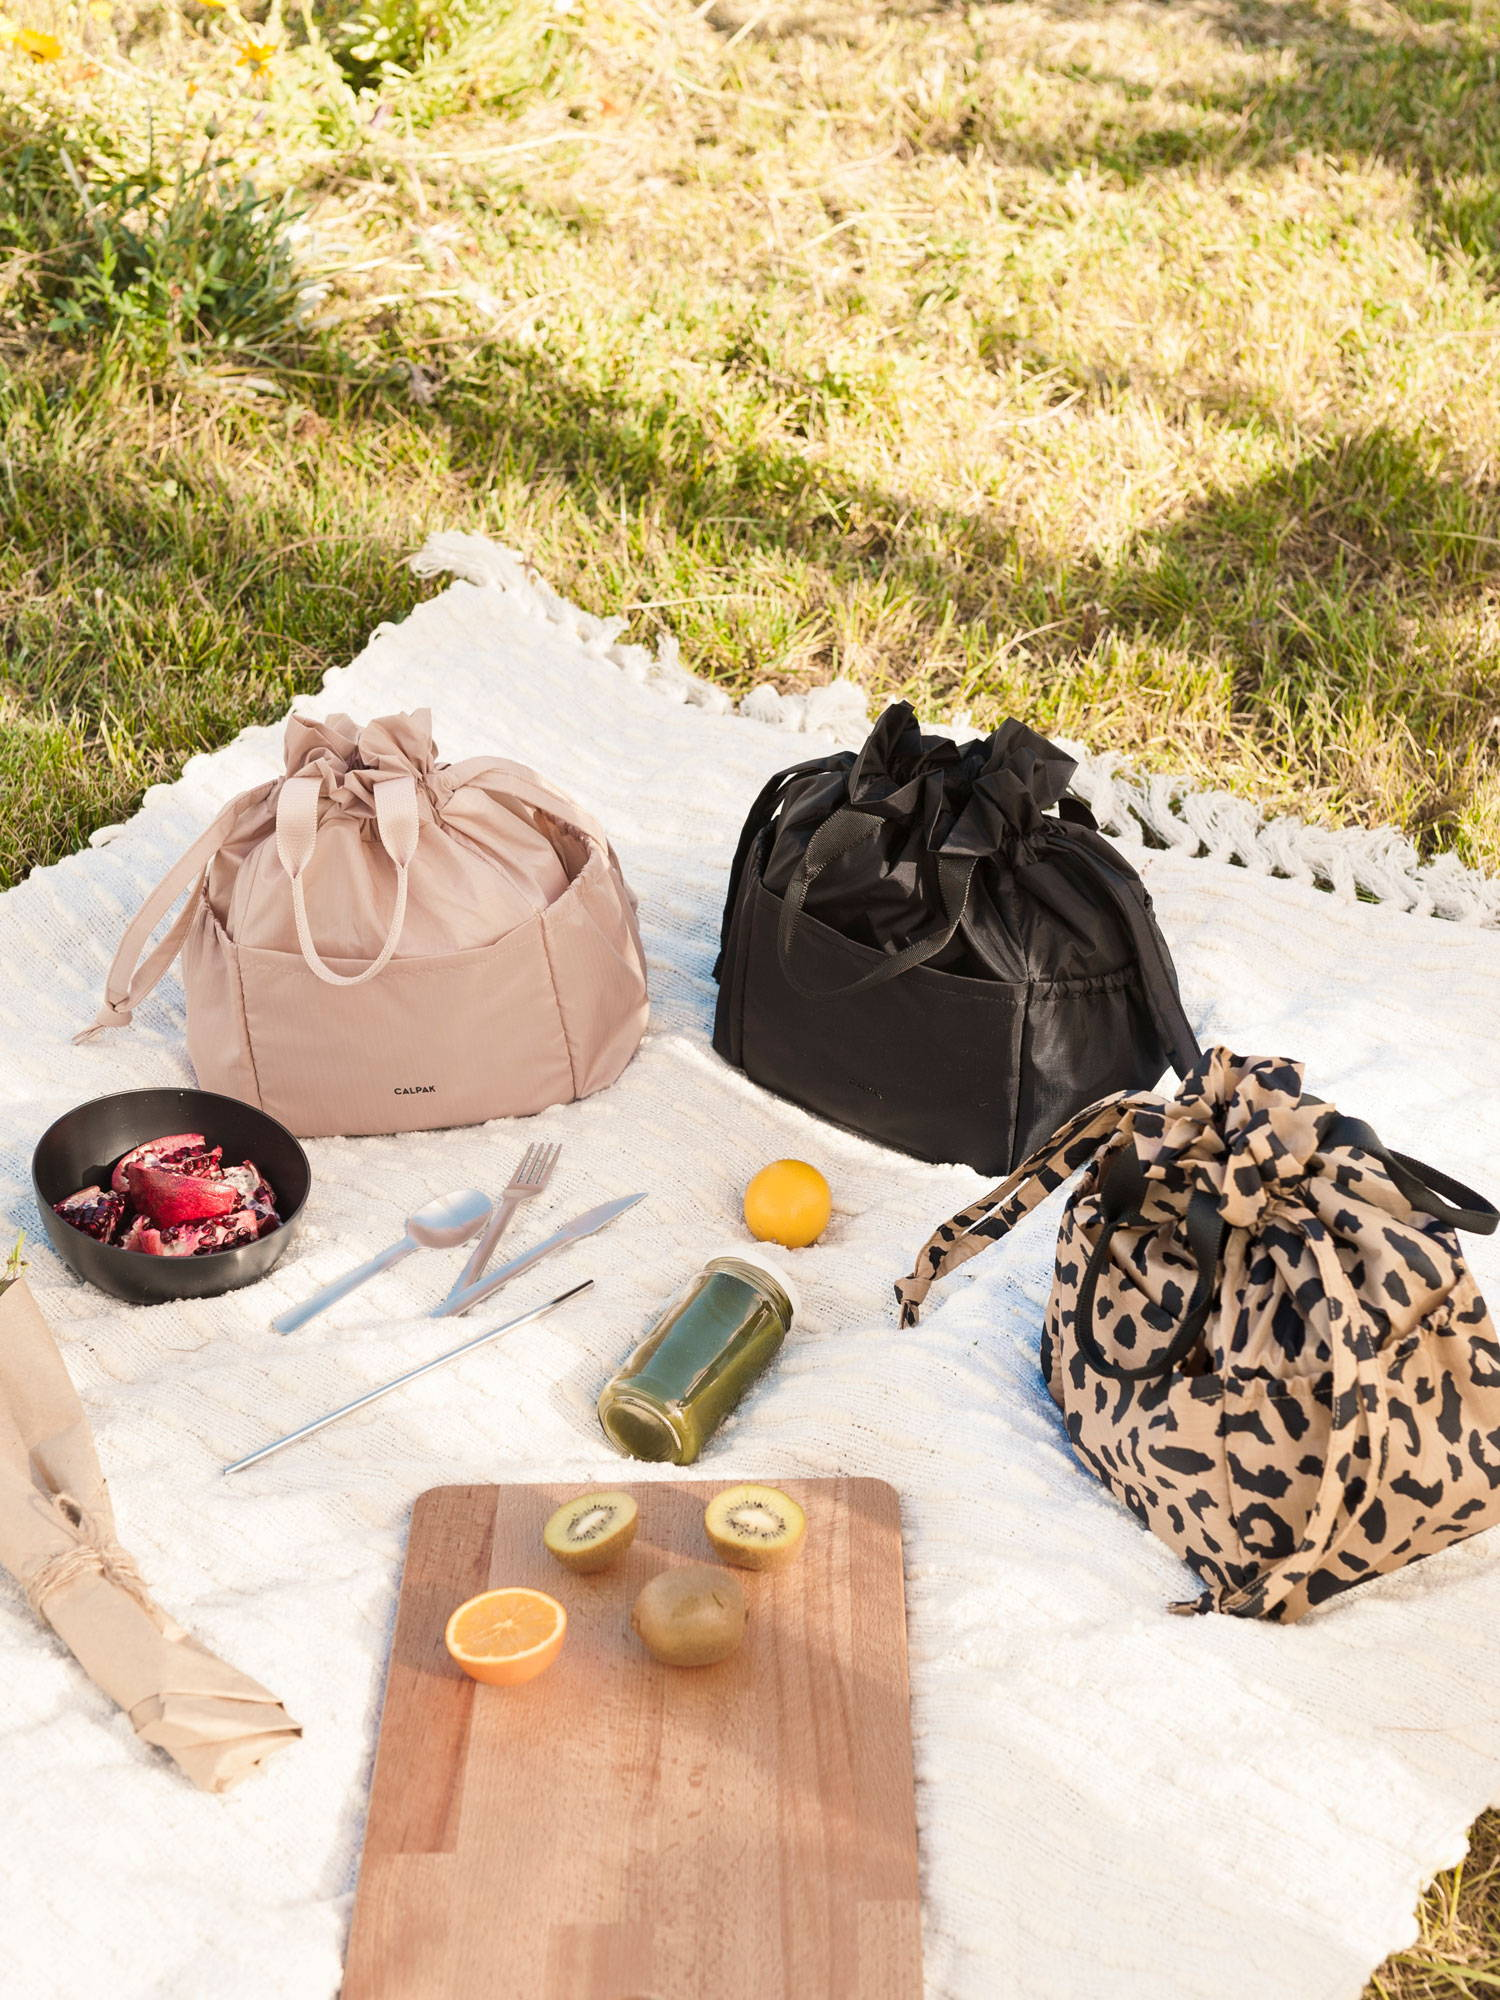 Group shot of all three Insulated Lunch Bags in Mauve, Black, and Cheetah